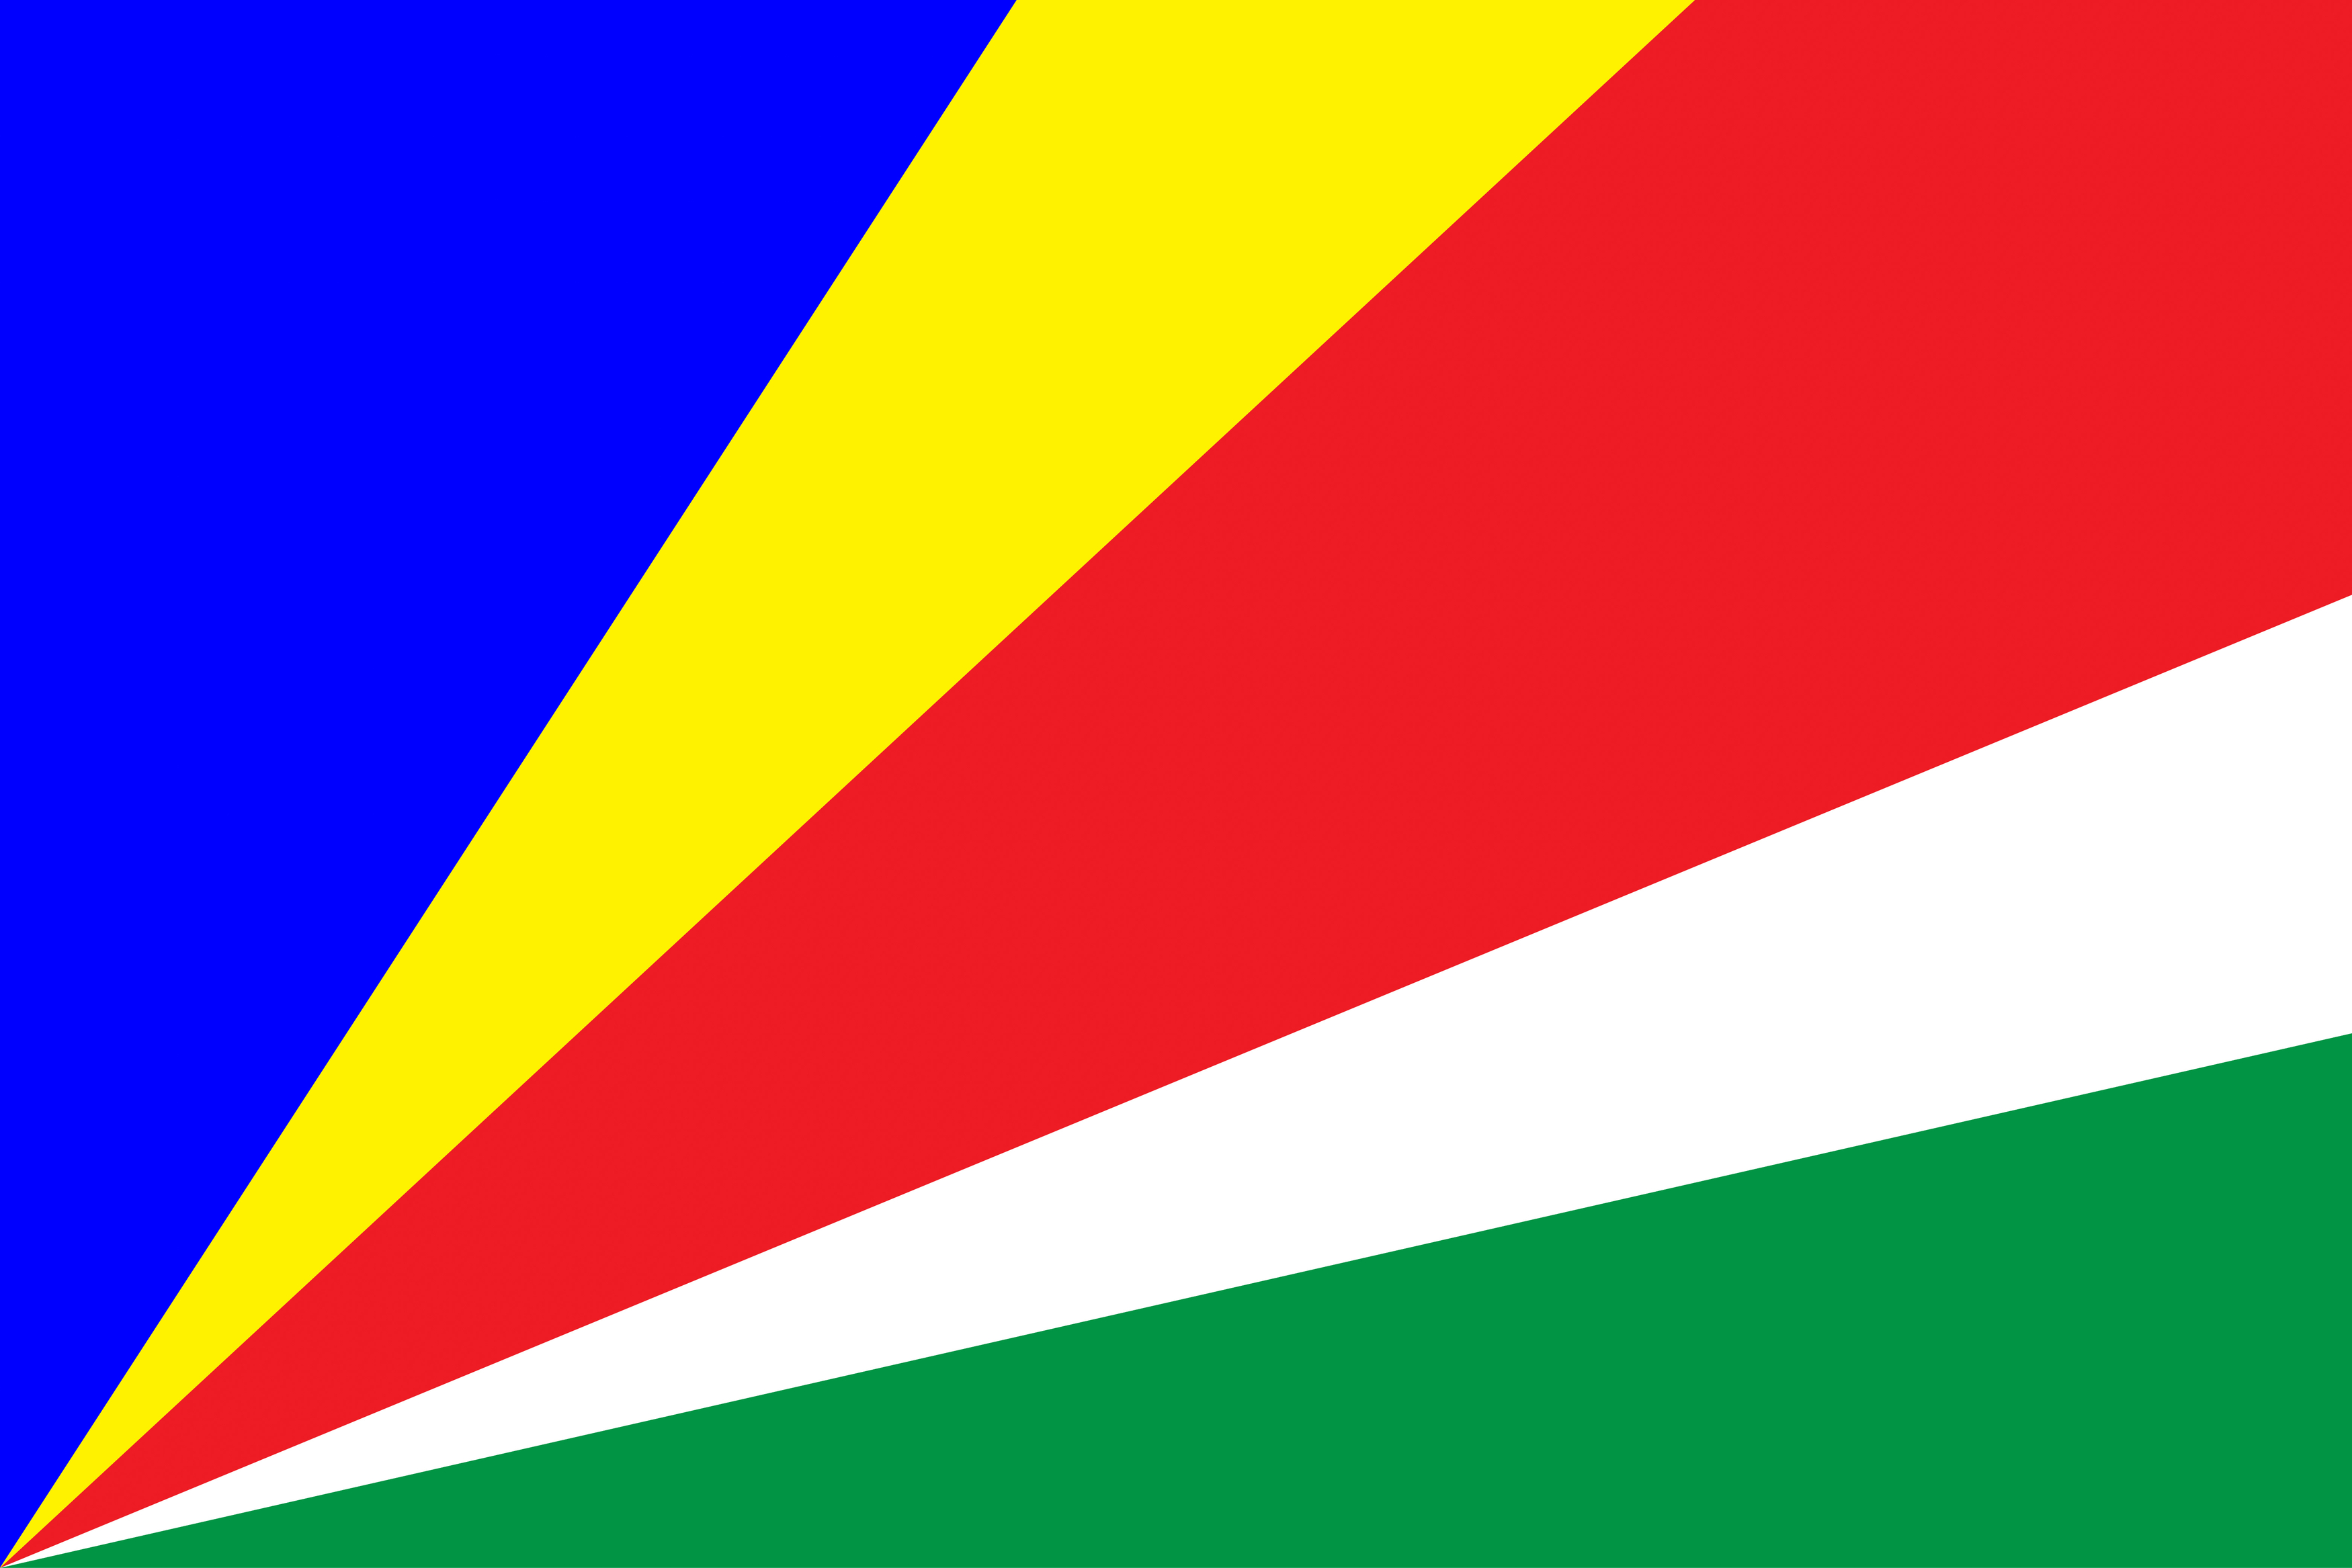 The flag of Seychelles was adopted on January 8, 1996.